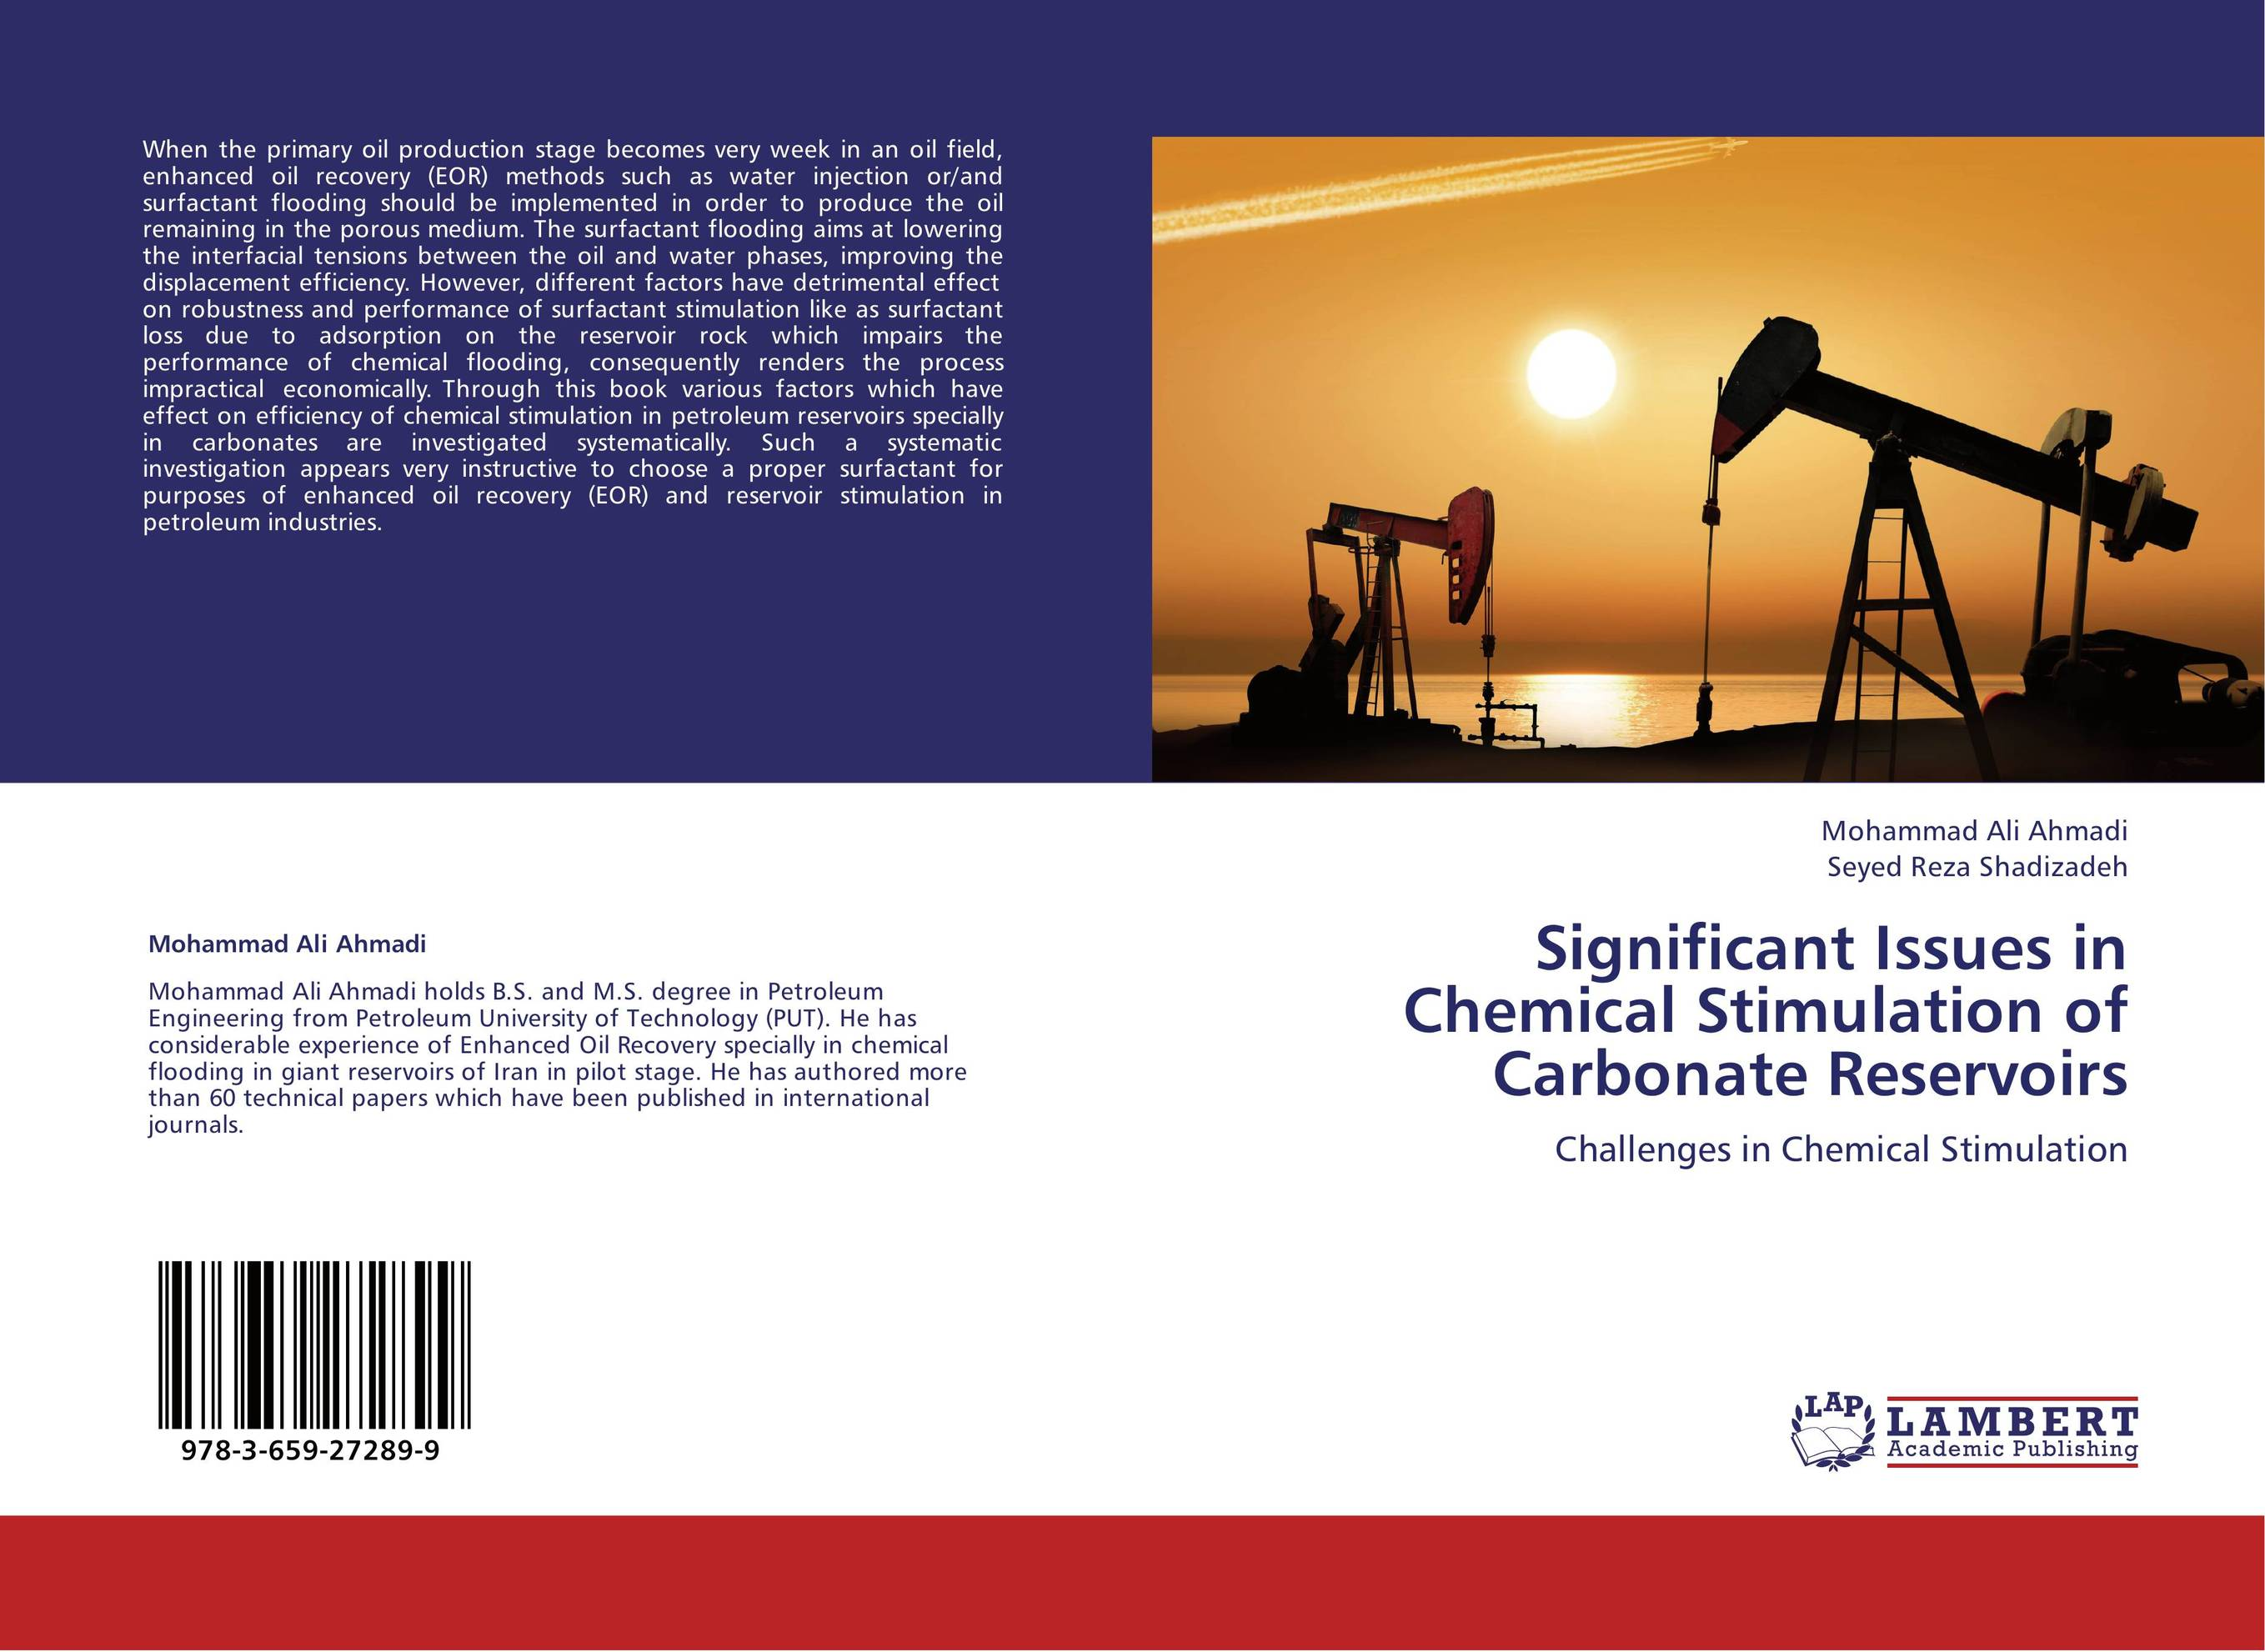 a paper on apprenticeship in chemical Chemical papers is a peer-reviewed, international journal devoted to basic and applied chemical research it has a broad scope covering the chemical sciences, but favors interdisciplinary research and studies that bring chemistry.